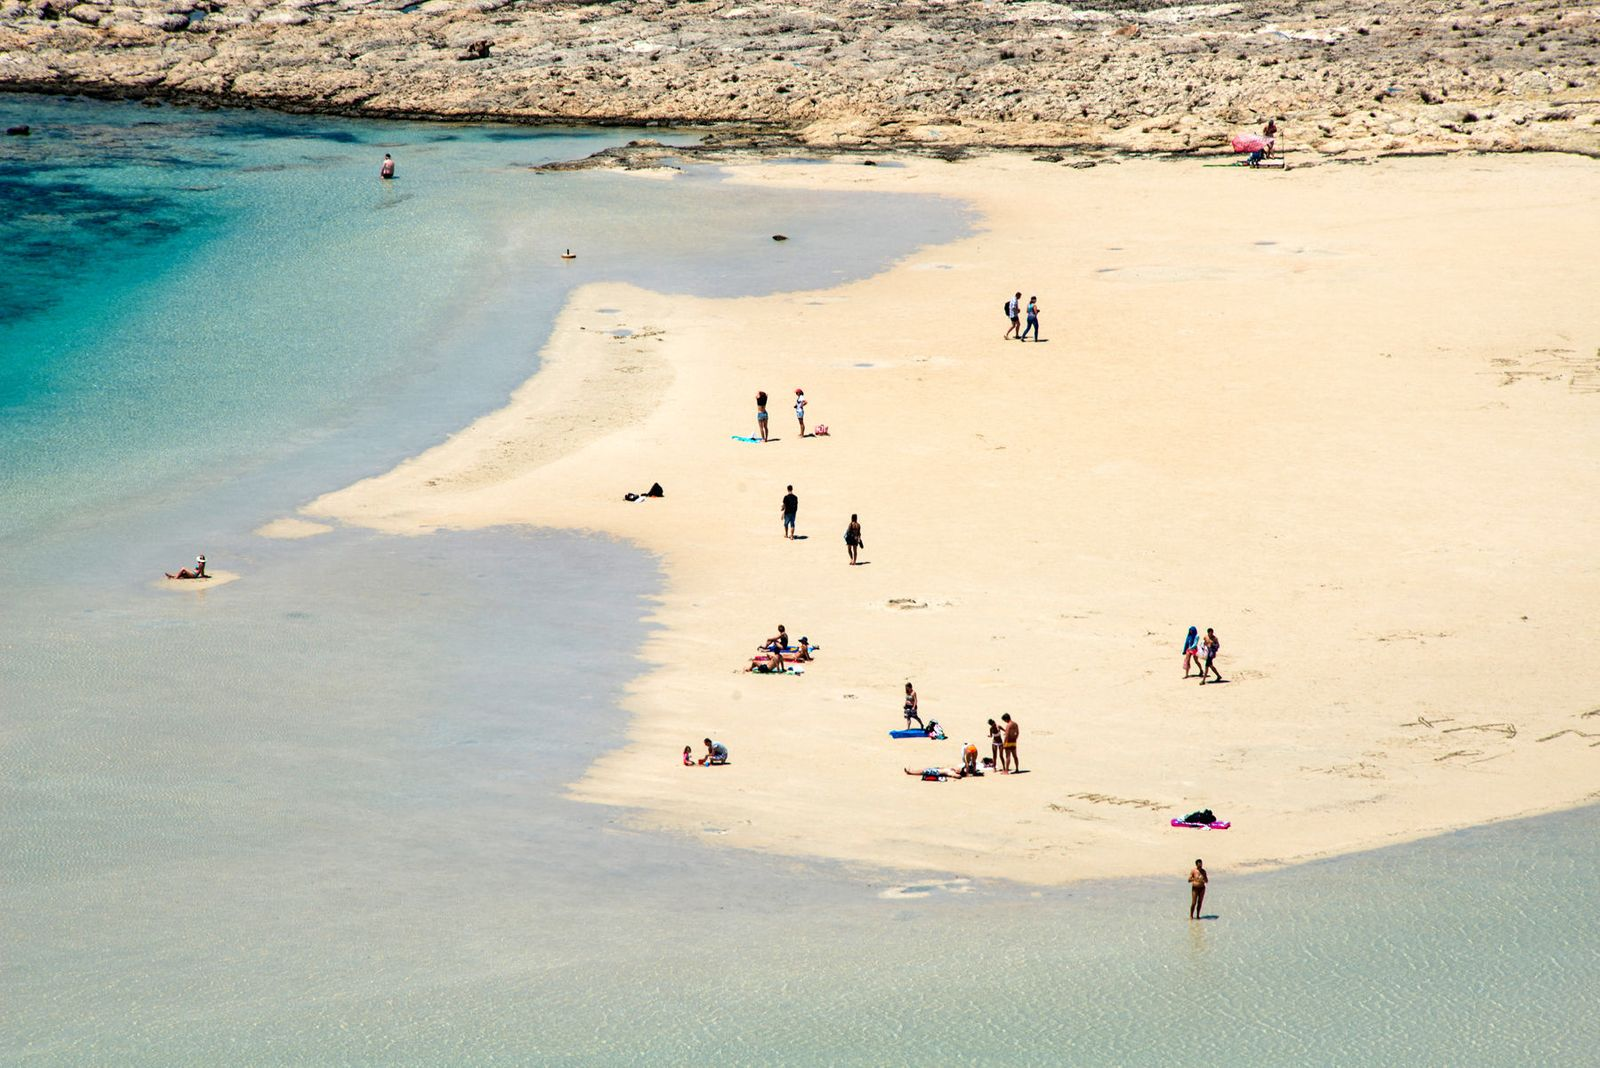 Balos breach, Crete, Greece